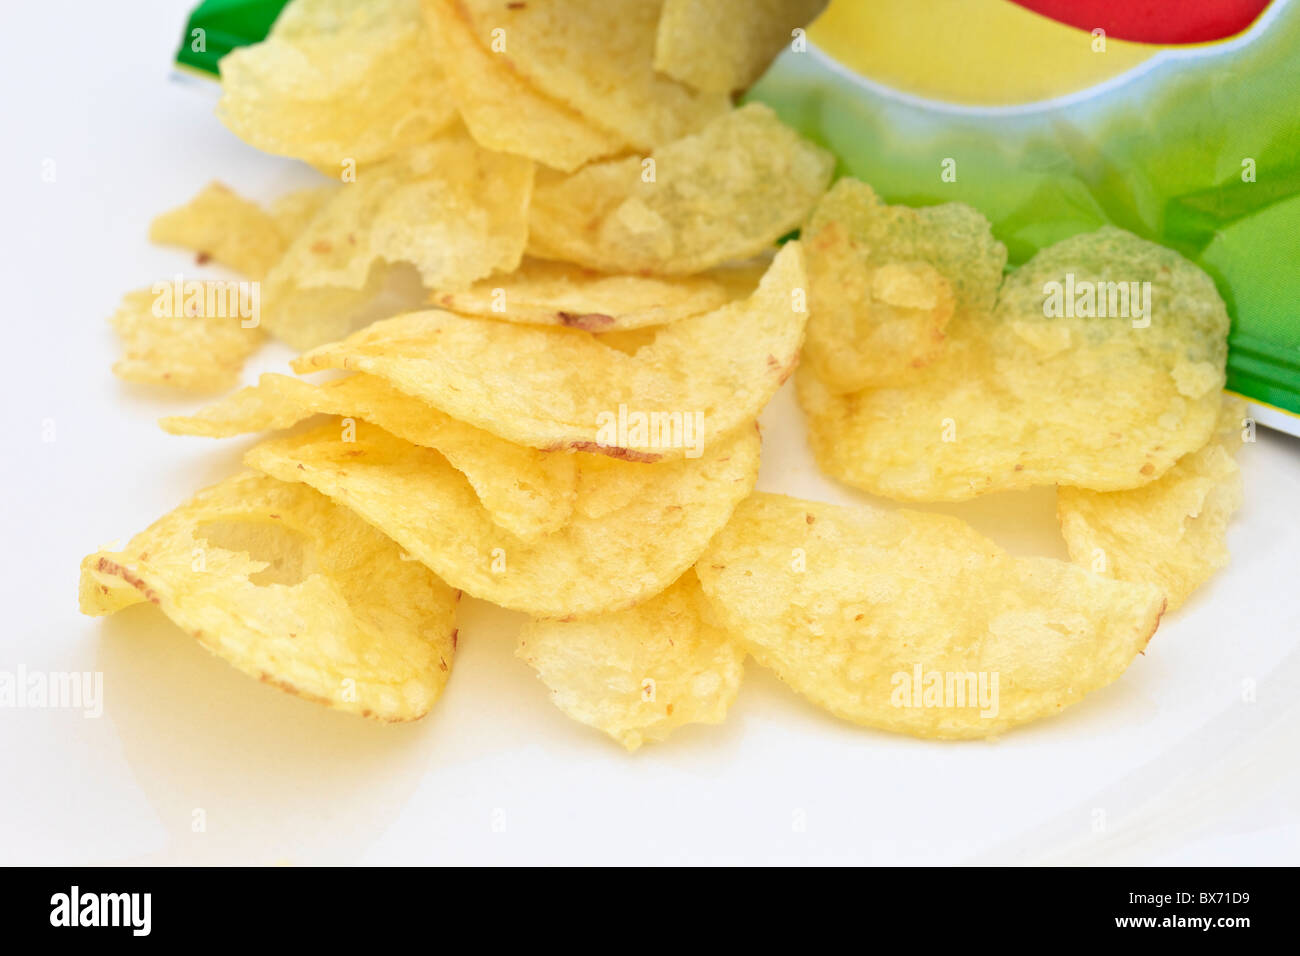 Crisp packet open with crisps spilling out - Stock Image